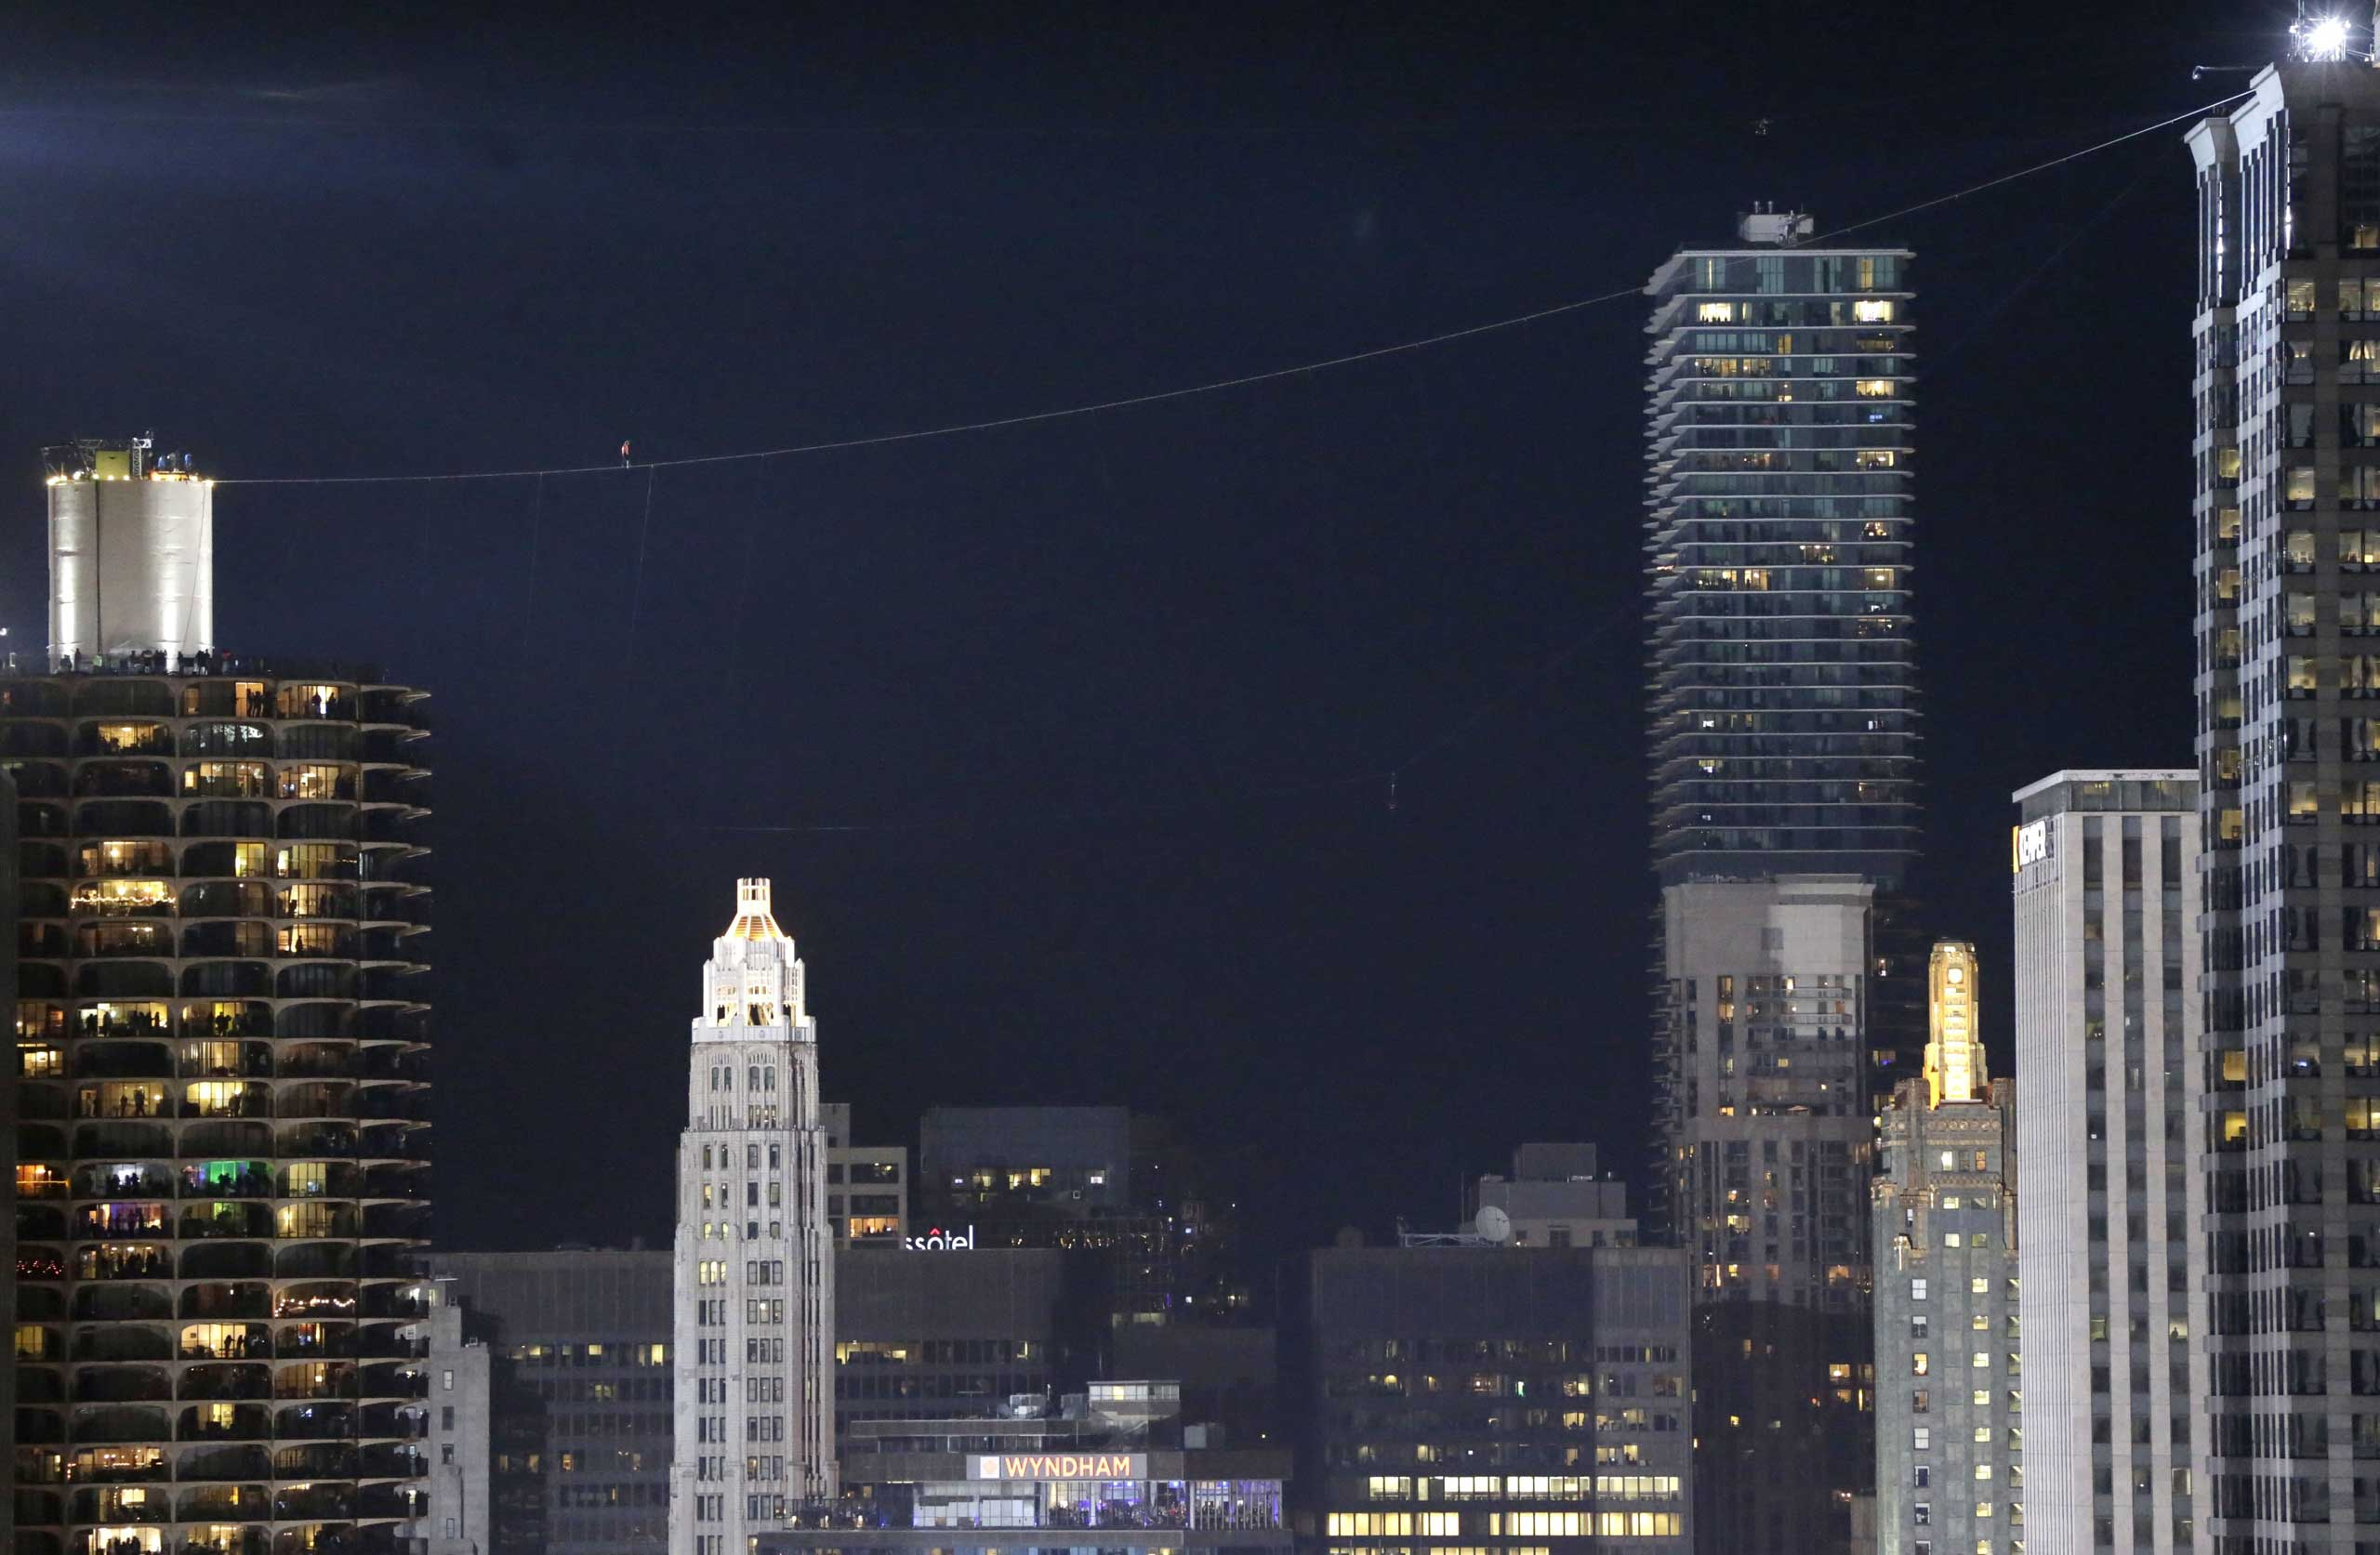 Nov. 2, 2014. Daredevil Nik Wallenda, left center in red, makes his tightrope walk uphill at a 19-degree angle, from the west tower at Marina City across the Chicago River to the top of the Leo Burnett Building in Chicago.